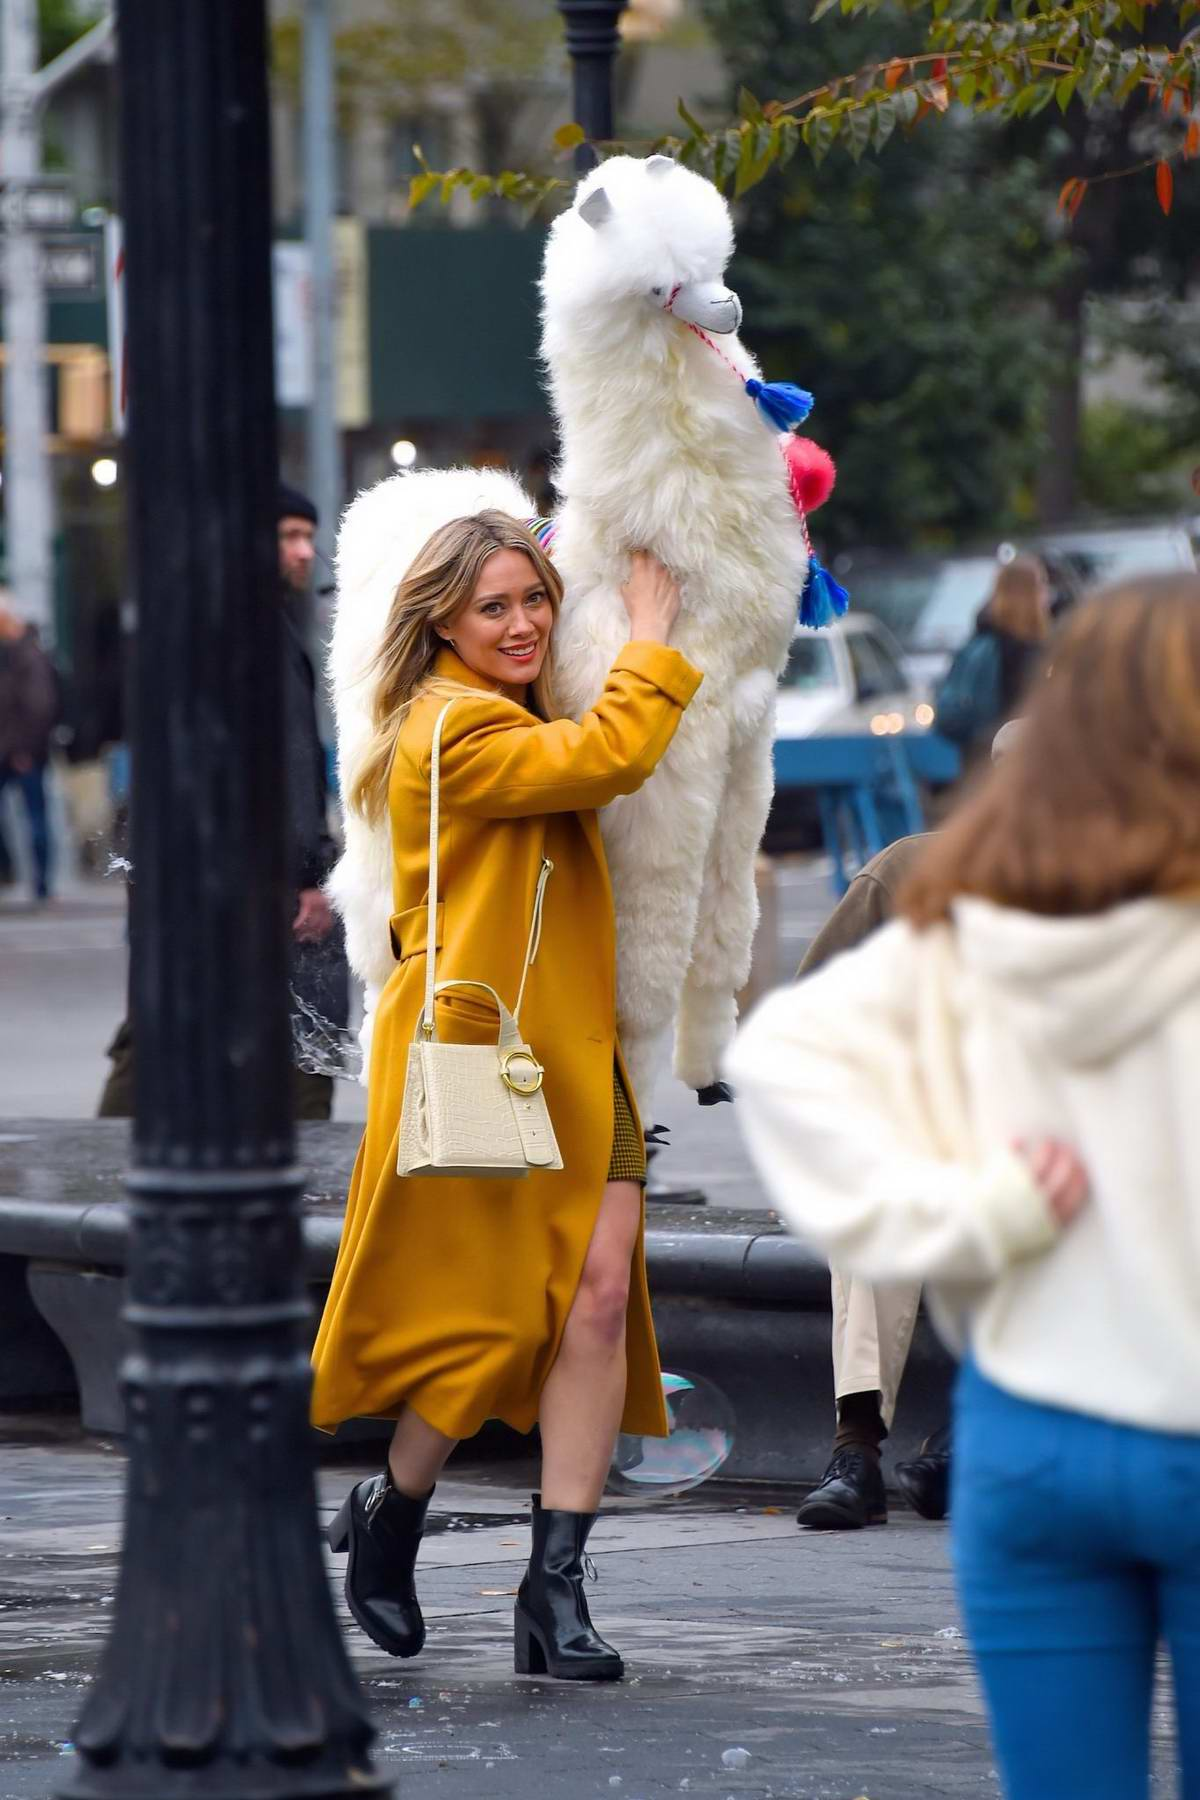 carrying a huge stuffed LlamaHilary Duff seen wearing a mustard yellow trench coat with a matching tartan outfit while carrying a huge stuffed Llama on the set of 'Lizzie McGuire' at Washington Square Park in New York City